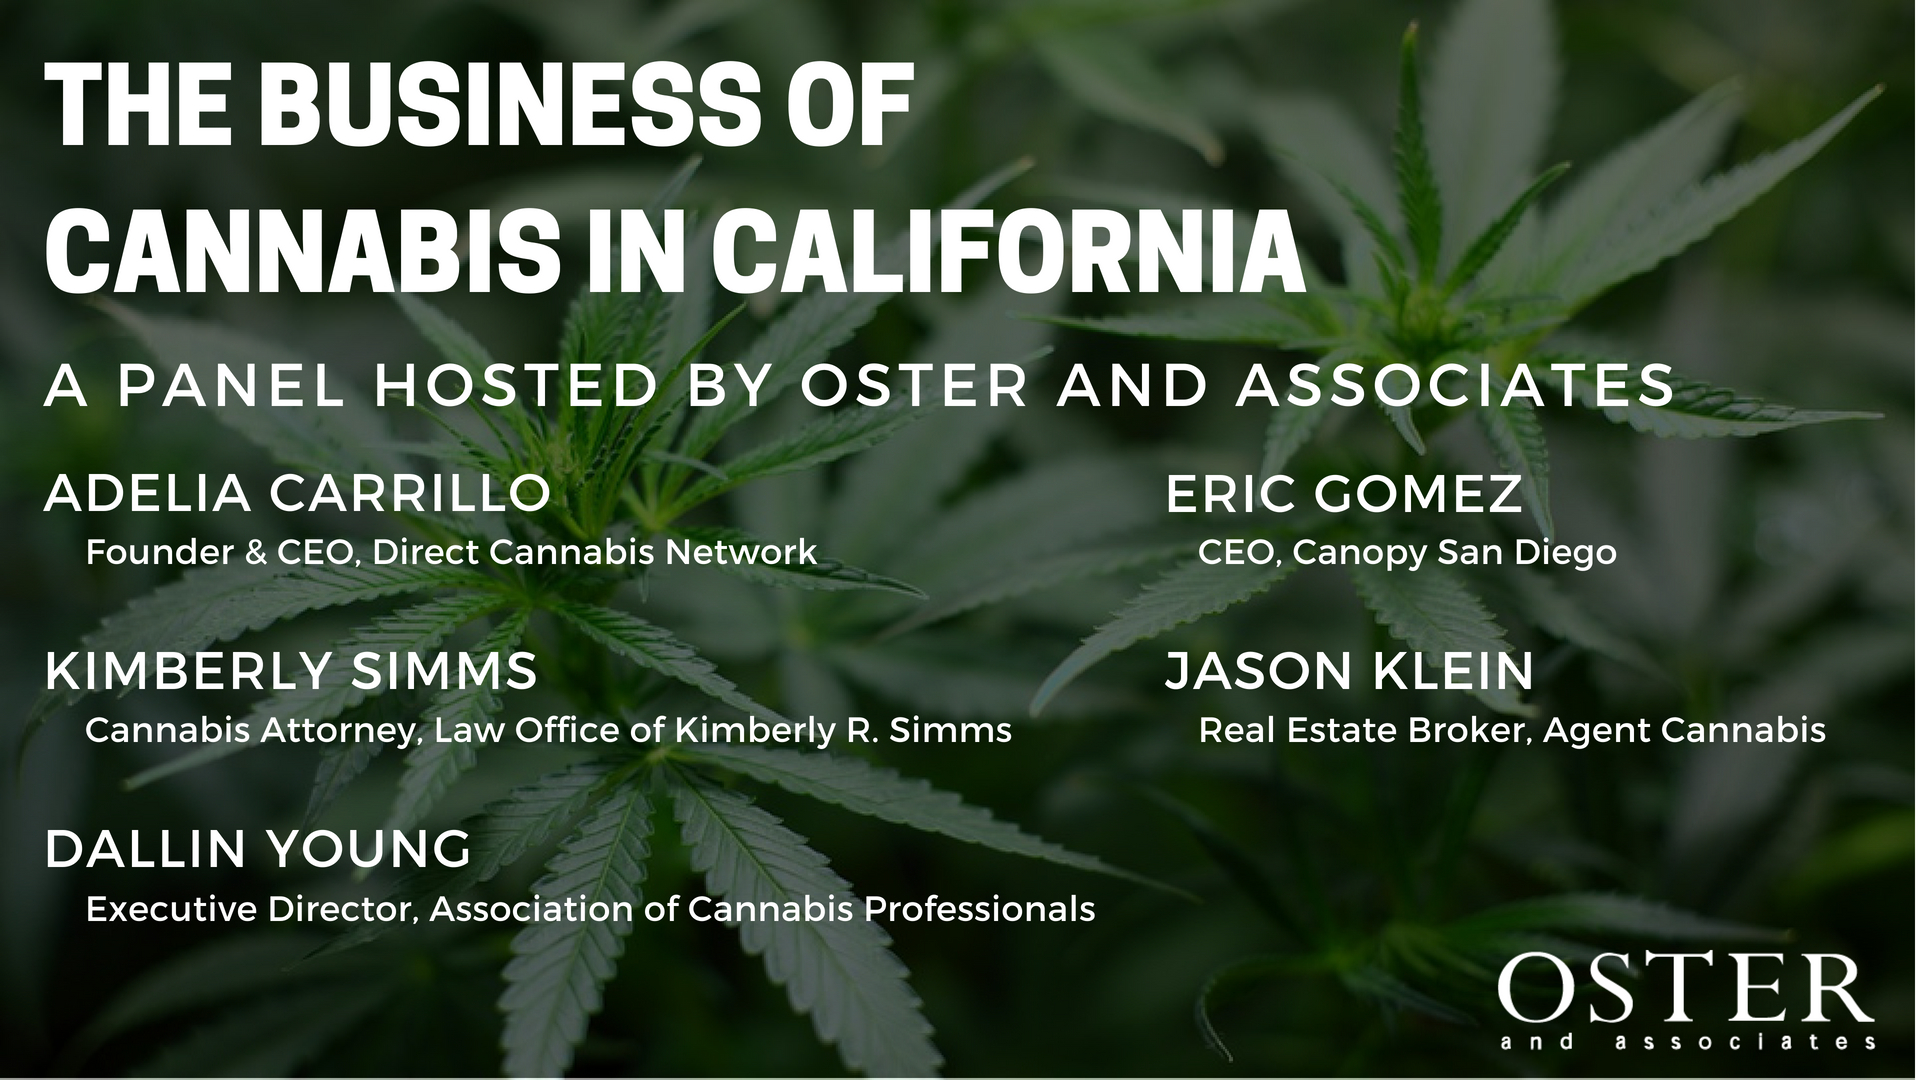 Why the Business of Cannabis is Good Business